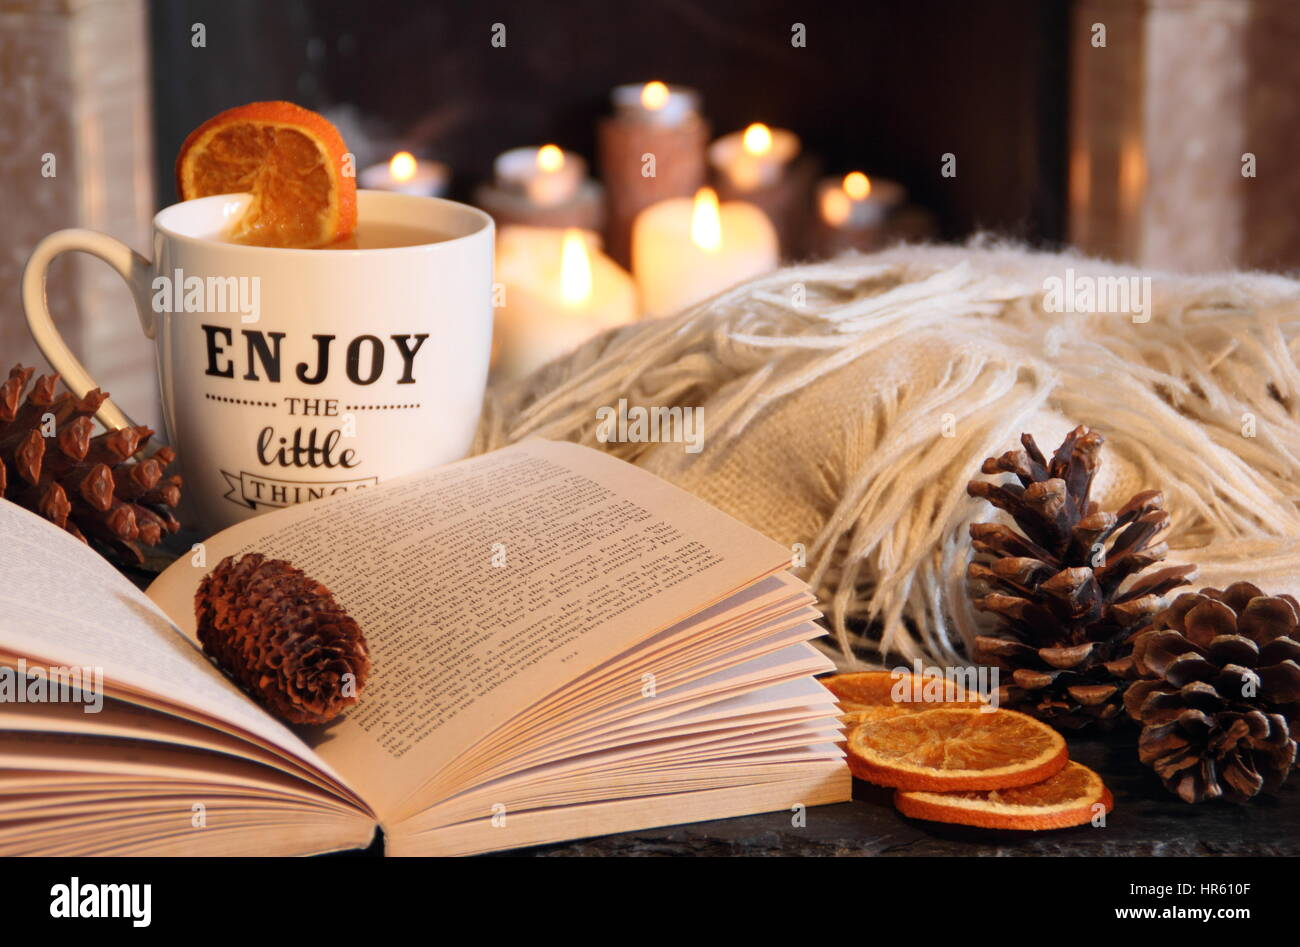 reading a paperback book by an open fire in a cosy hygge inspired stock photo 134742175 alamy. Black Bedroom Furniture Sets. Home Design Ideas